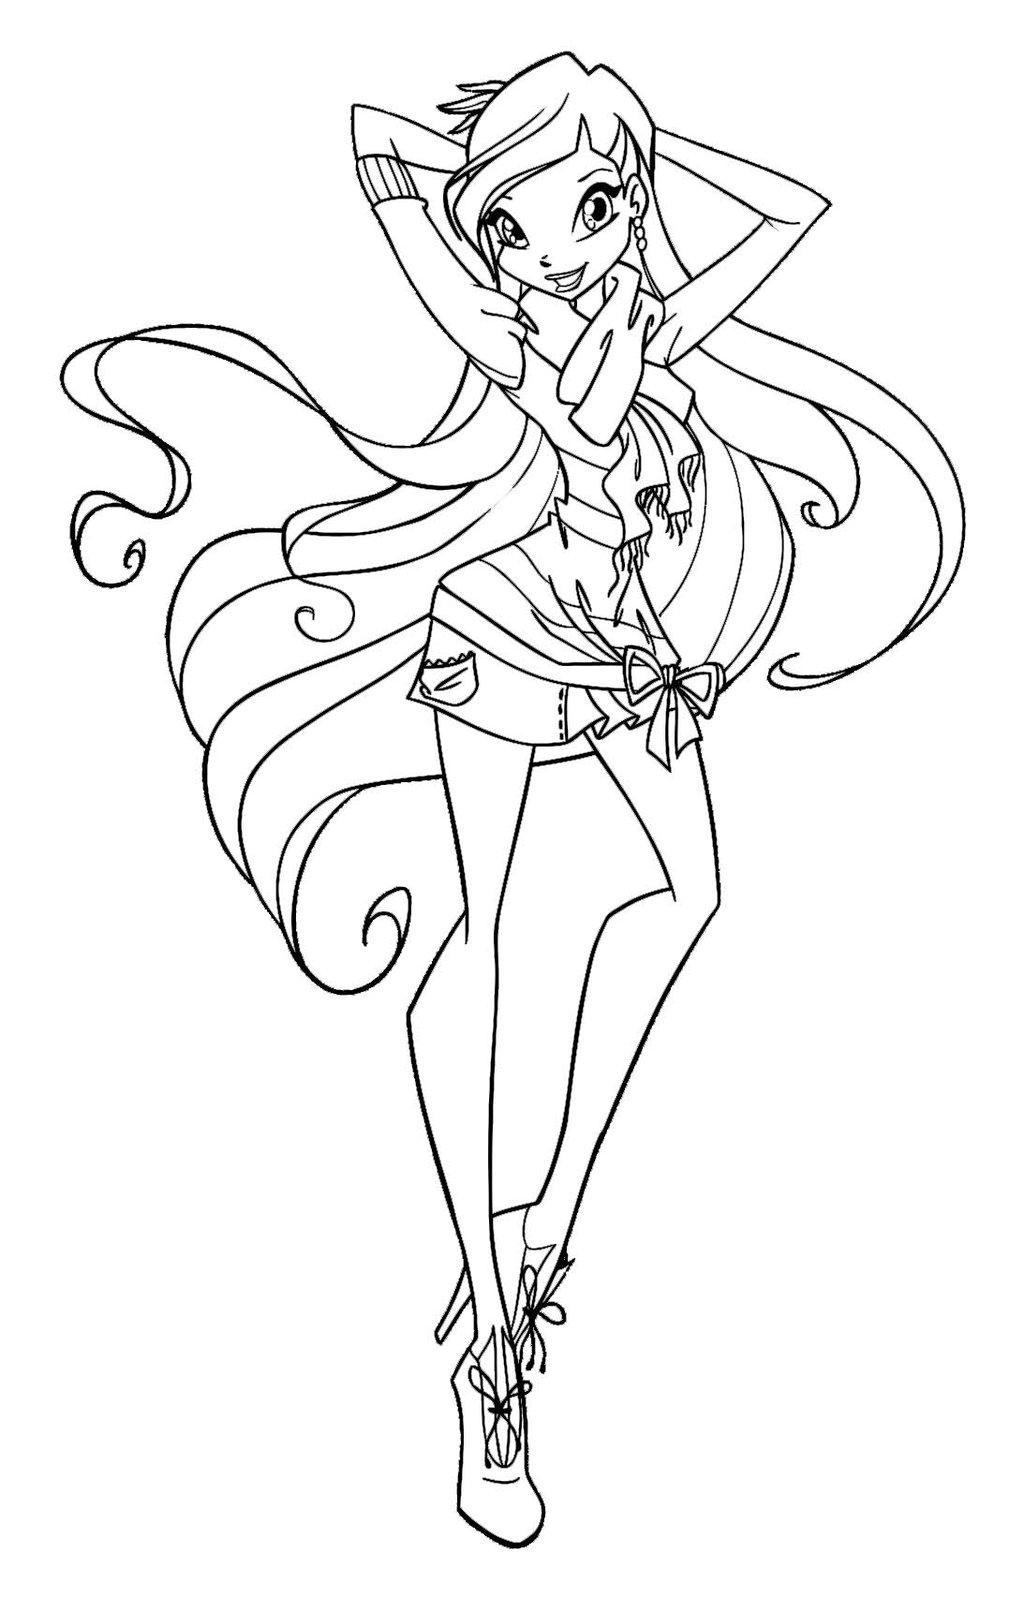 The Best Free Winx Coloring Page Images From 312